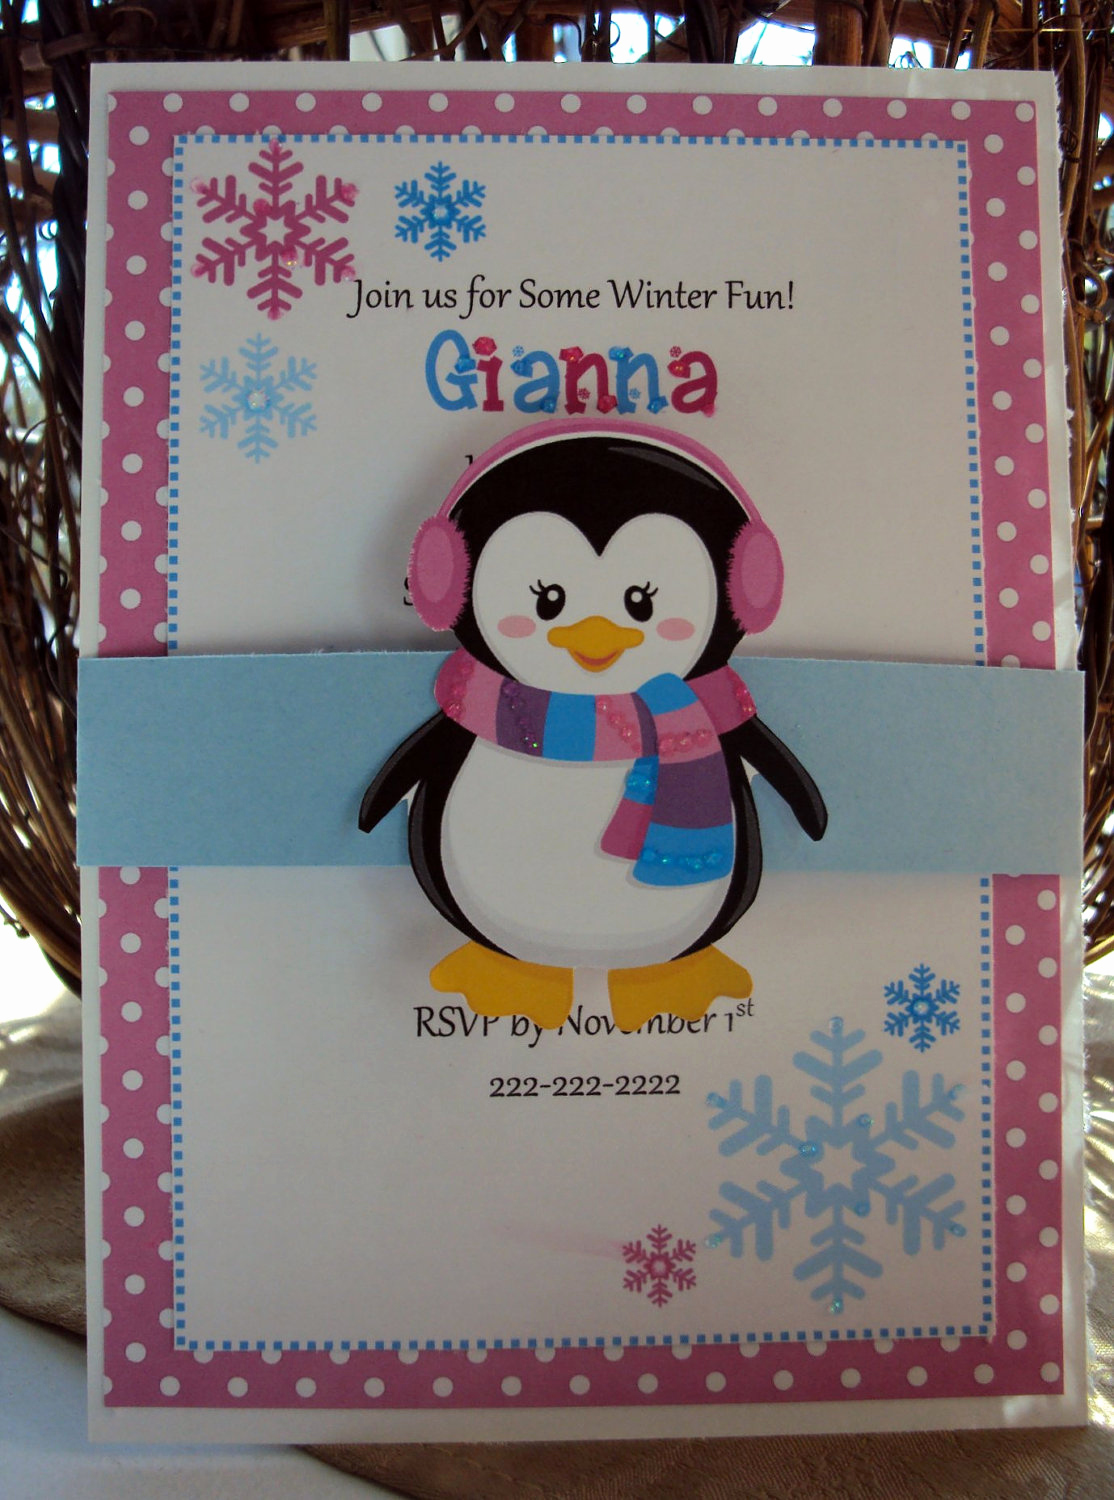 Winter Wonderland Invitation Ideas New Winter Wonderland Invitations Birthday Invitation Winter